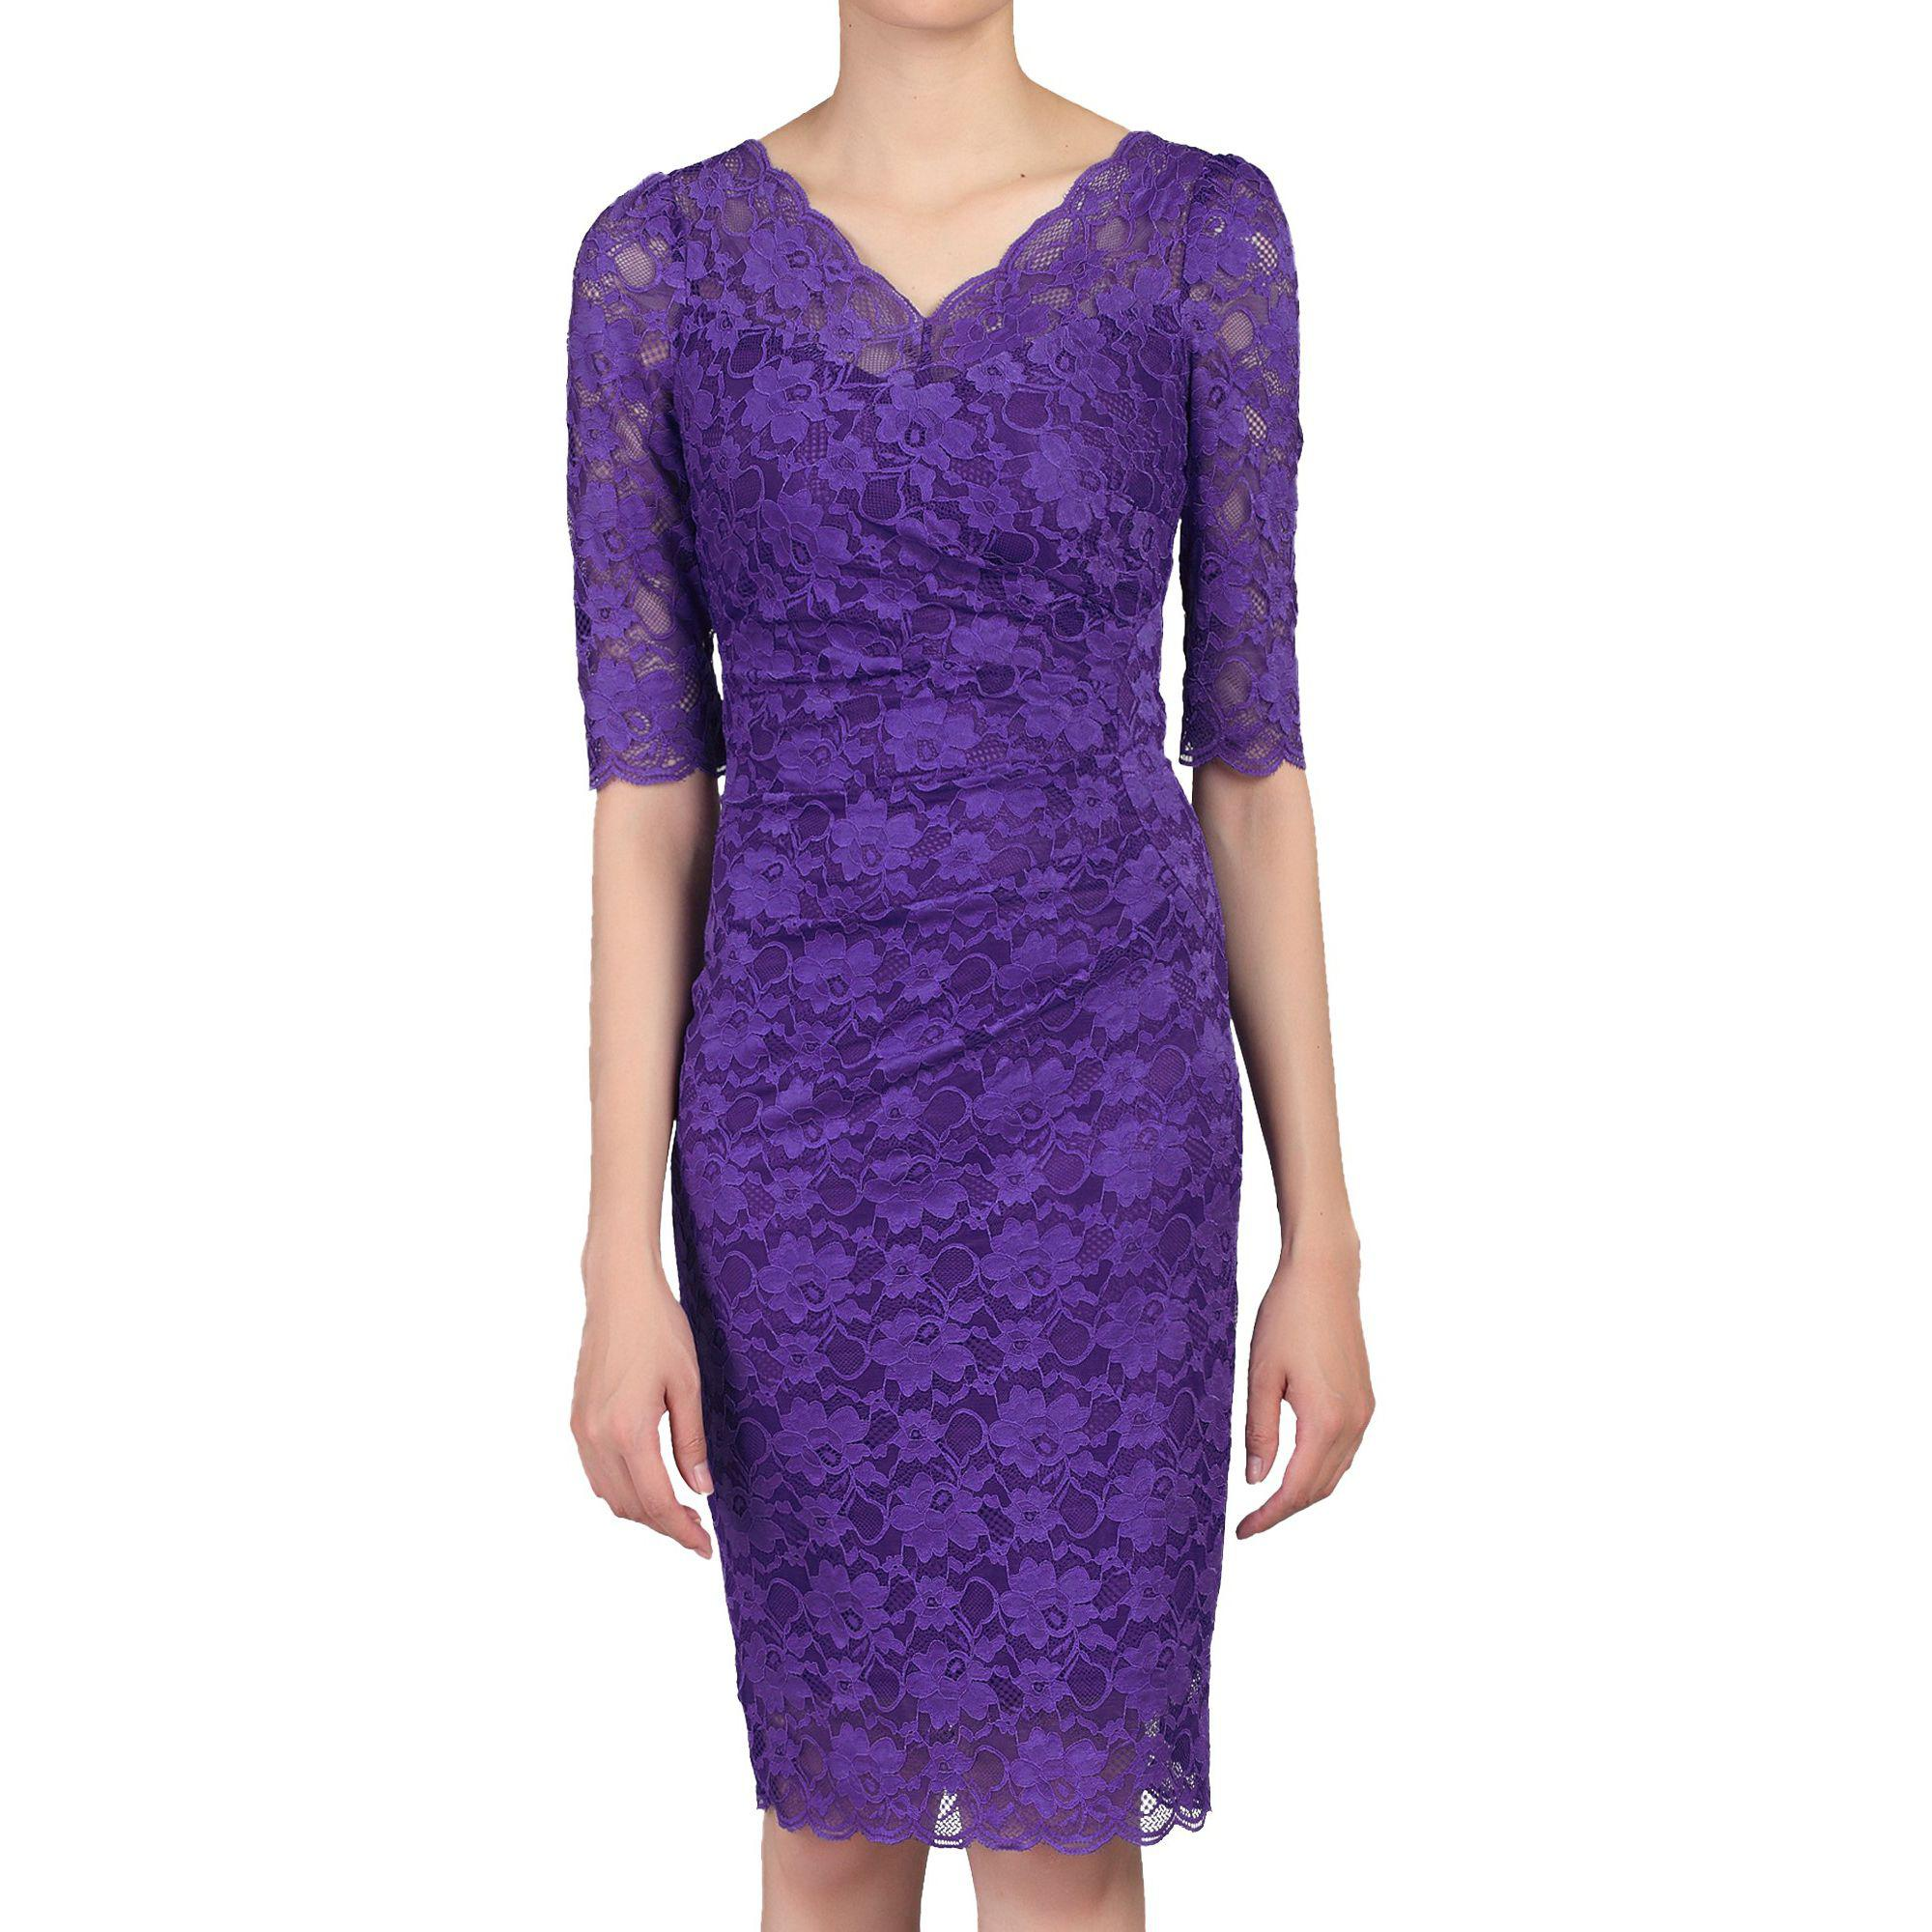 4ec9262f Jolie Moi Lilac 3/4 Sleeves V Neck Ruched Lace Dress in Purple - Lyst